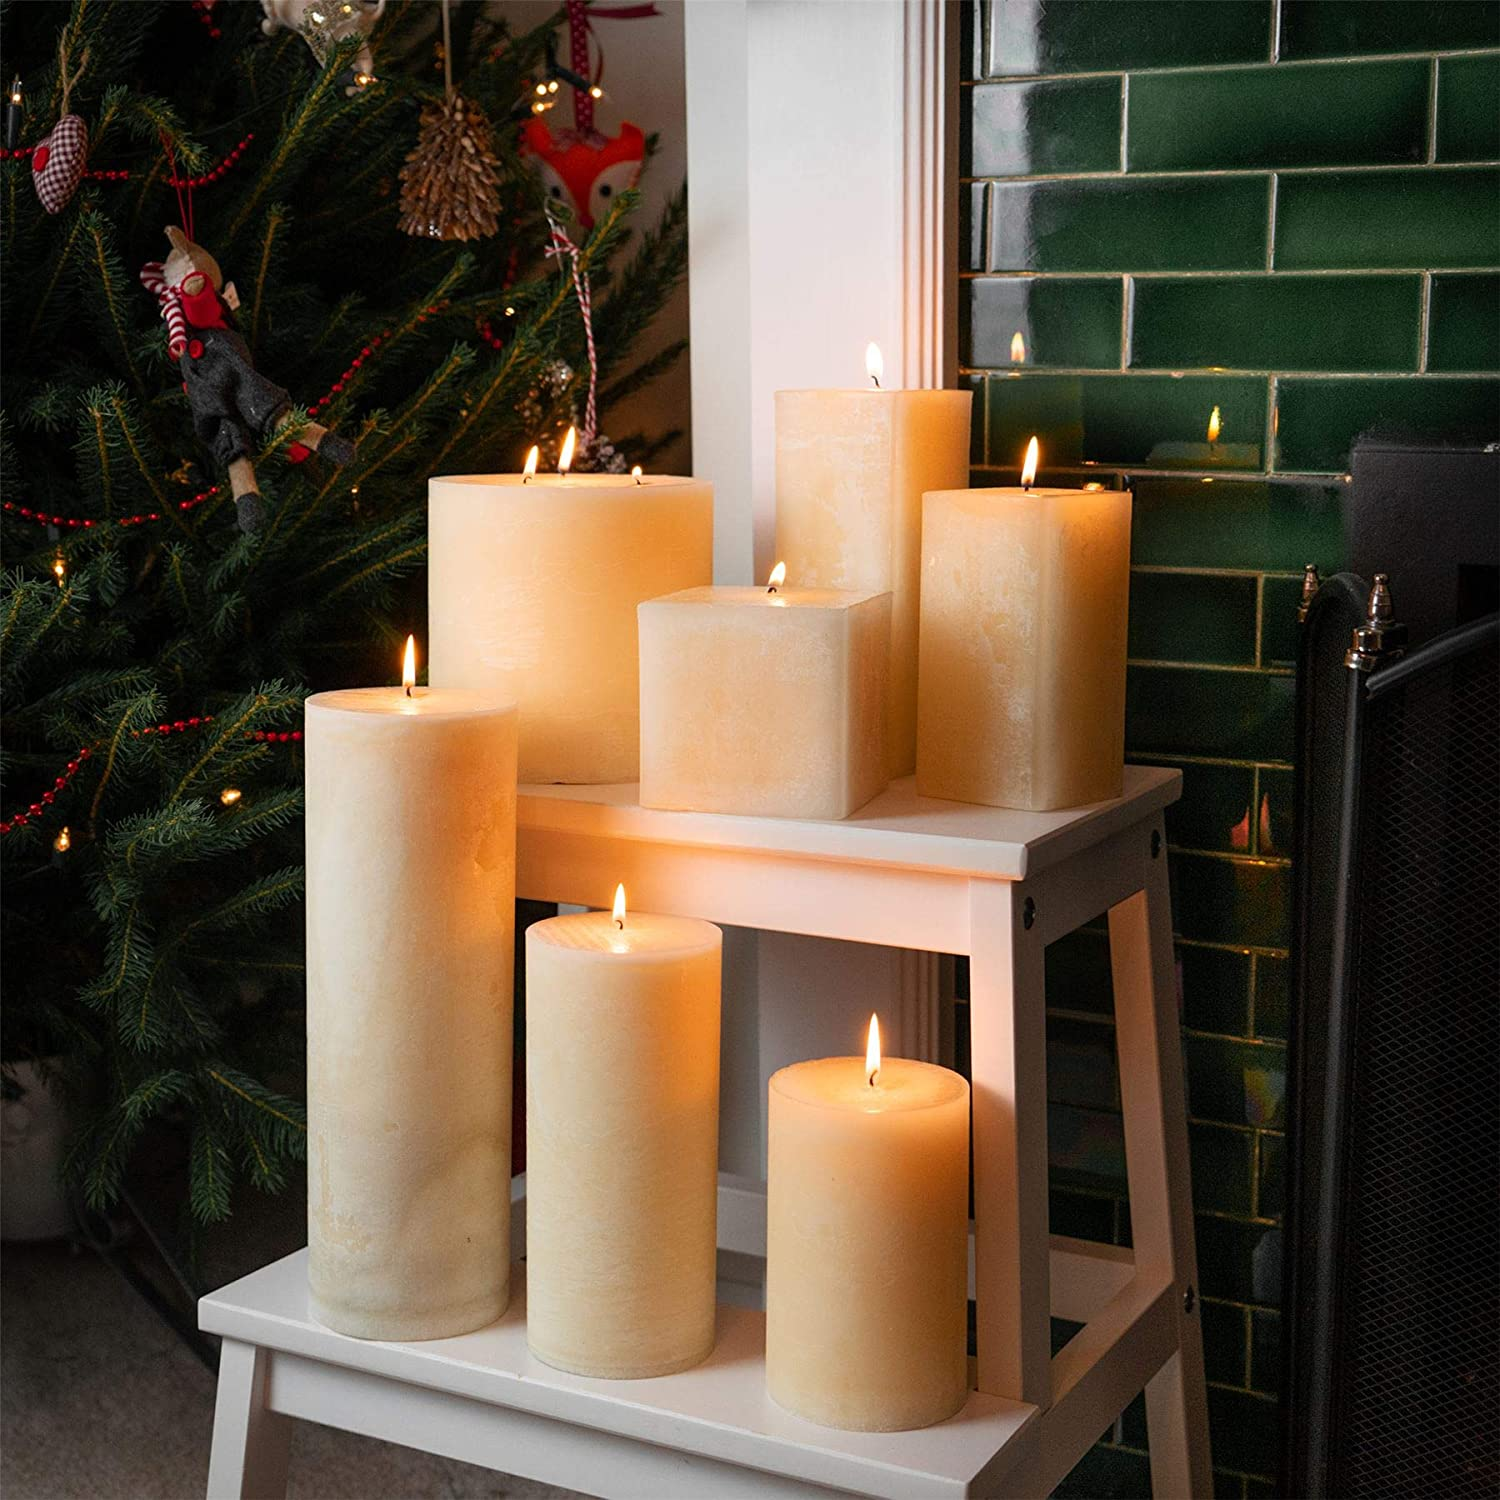 120hrs Burning Time Vanilla Scented Single Wick Square Candle 100x100x100mm